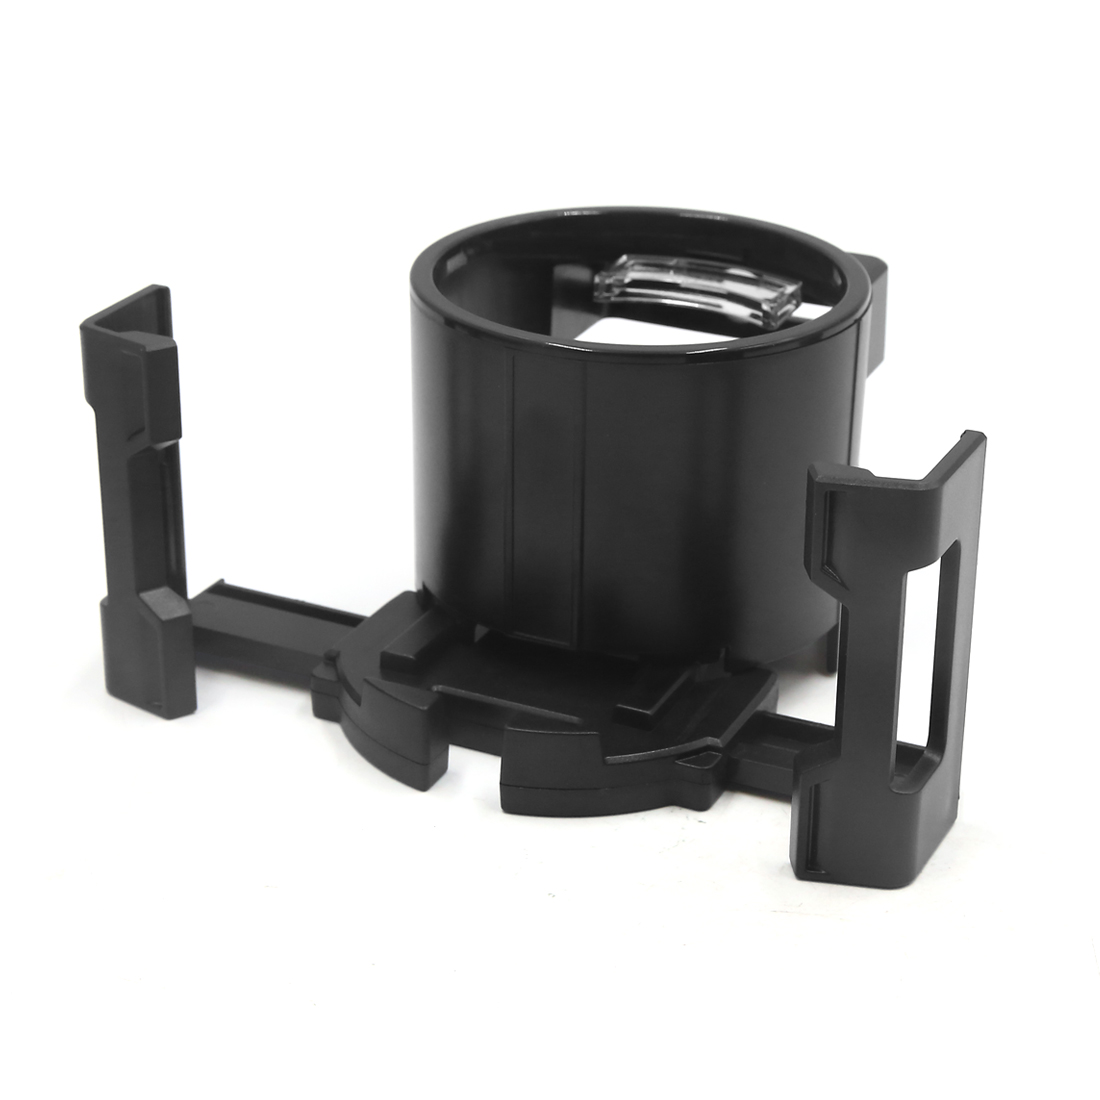 Car Truck Air Outlet Multi-function Cup Holder Drink Bottle Stand Mount